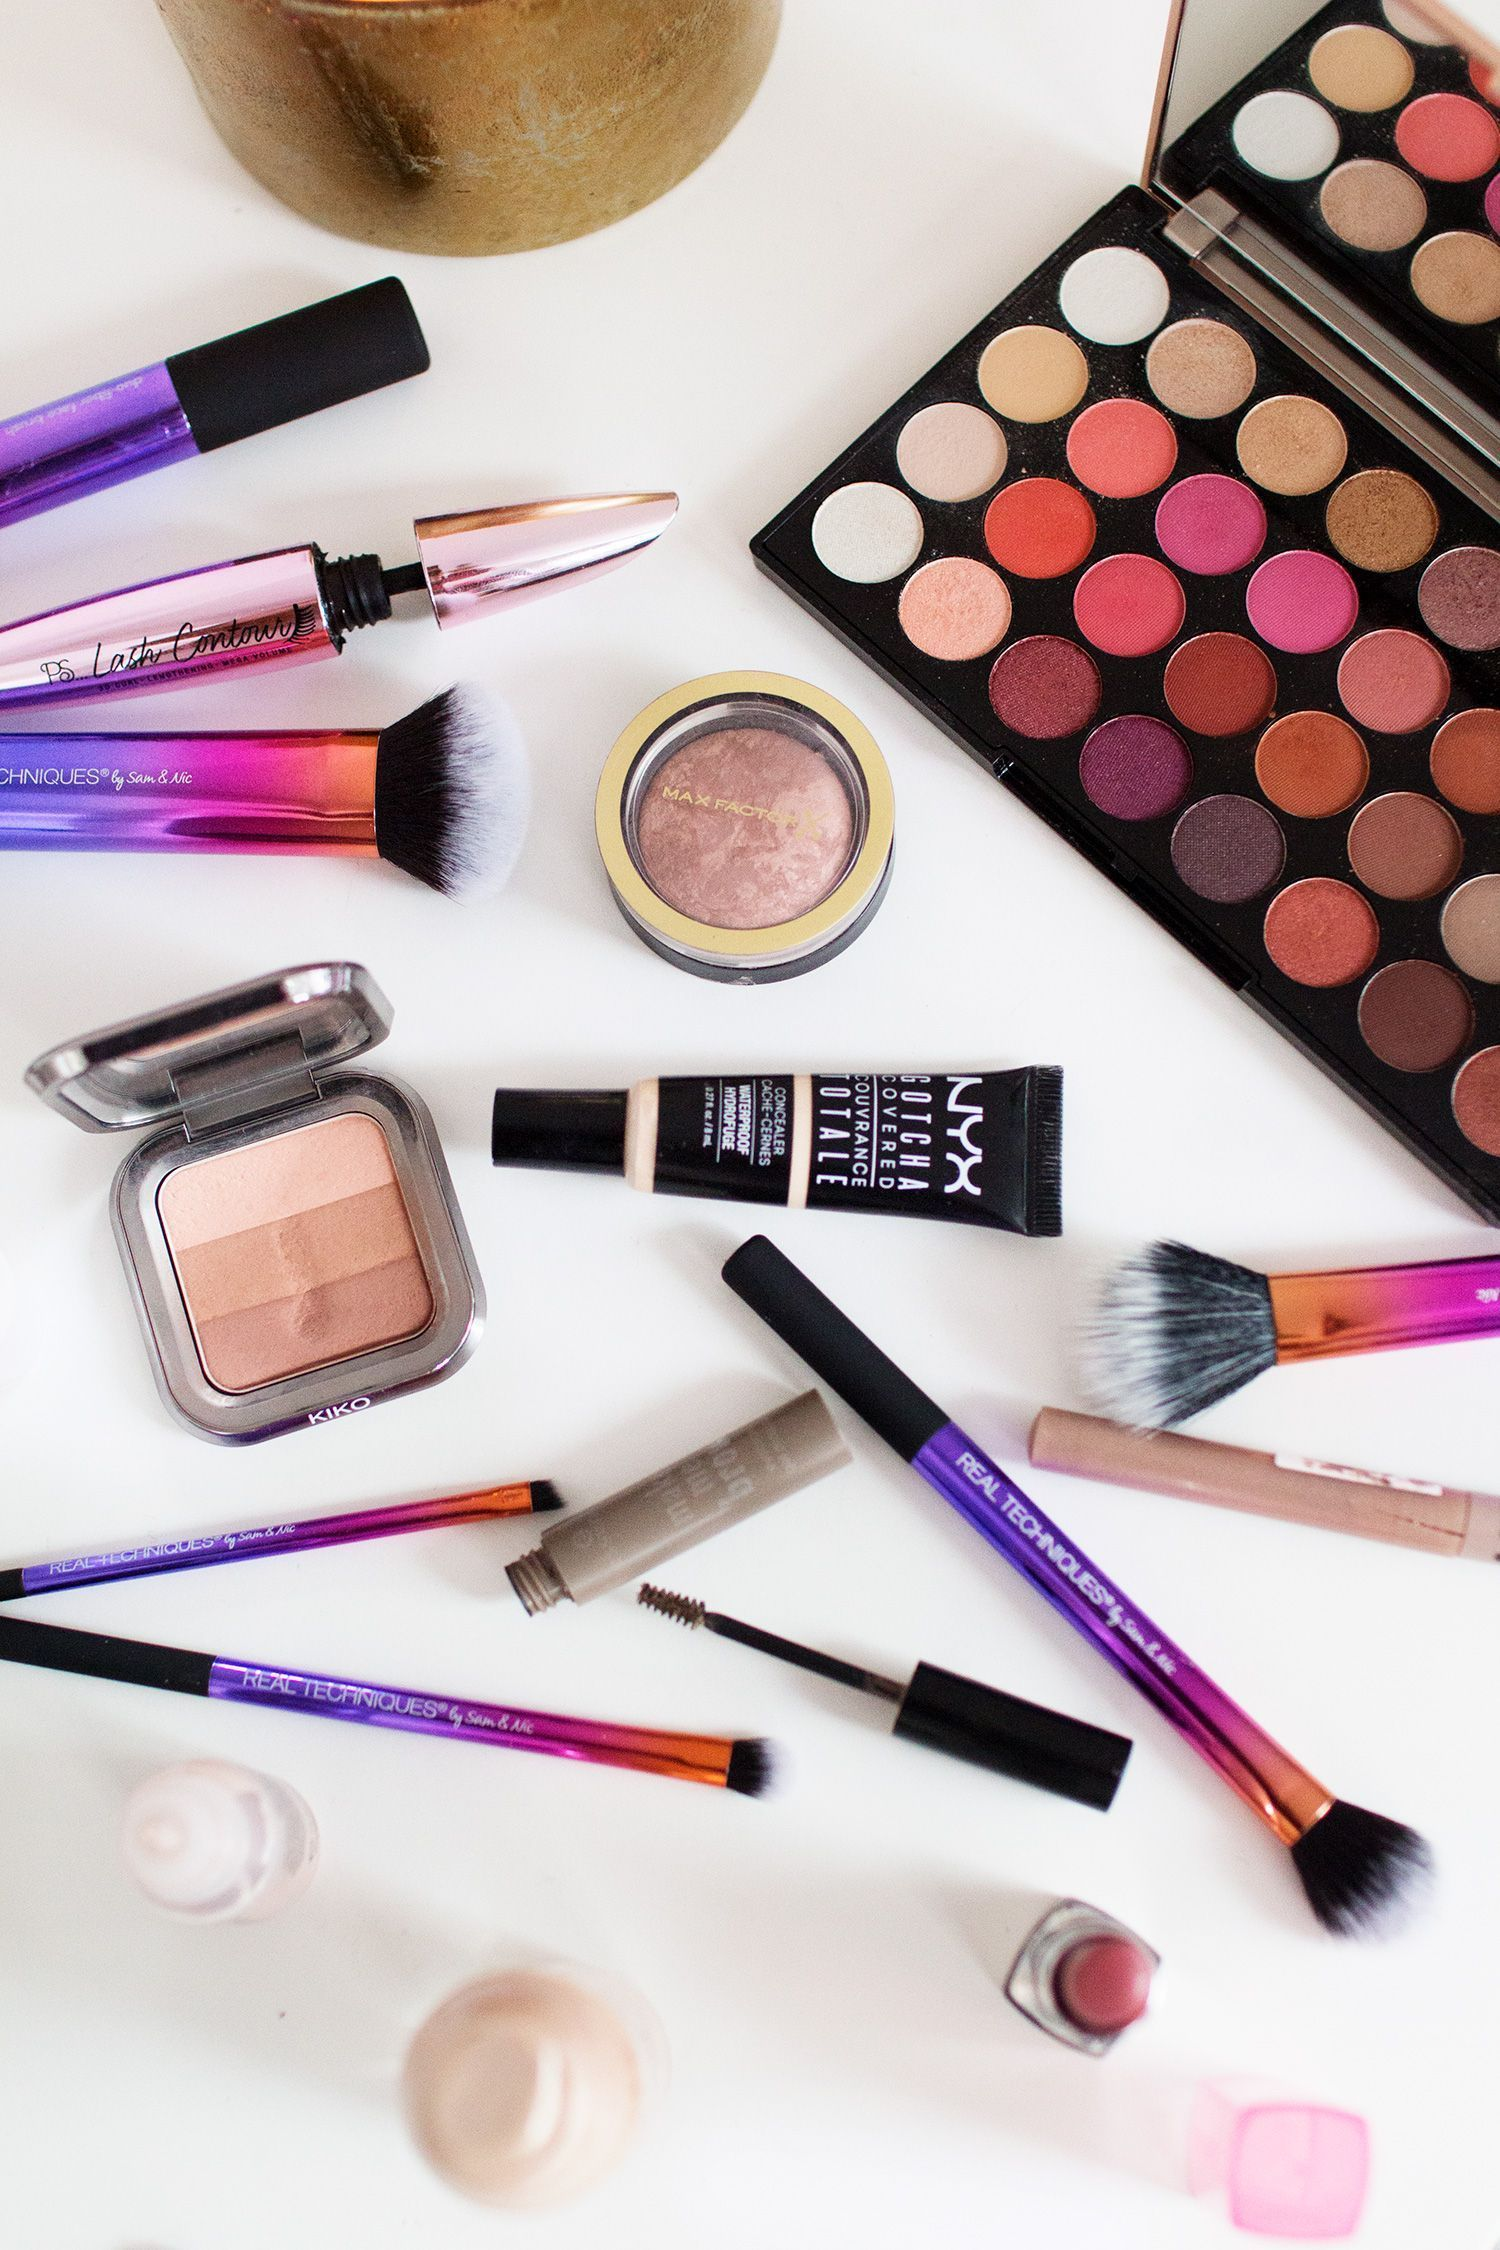 The Best Drugstore Makeup of 2017! ft the Makeup